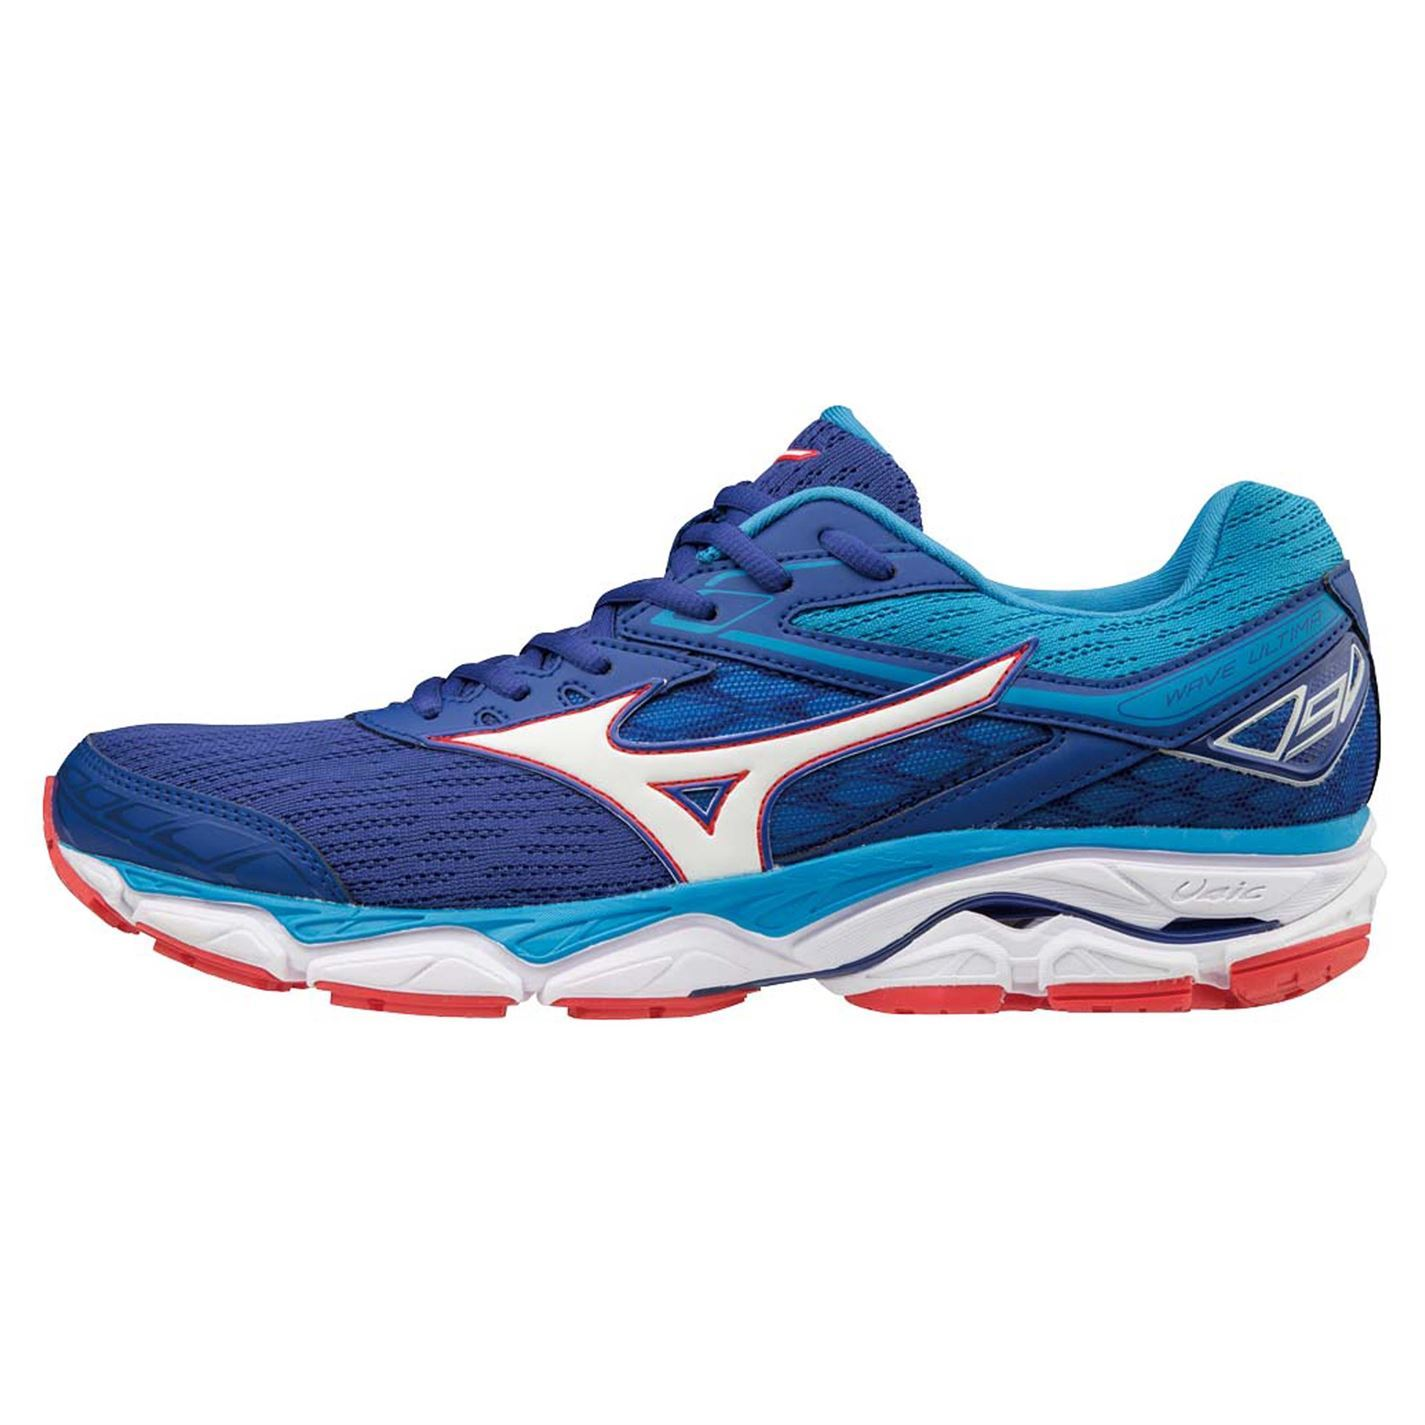 Mizuno Wave Ultima Herren 9 Running Schuhes  Herren Ultima Gents Road Ventilated Lightweight Mesh d11ac5